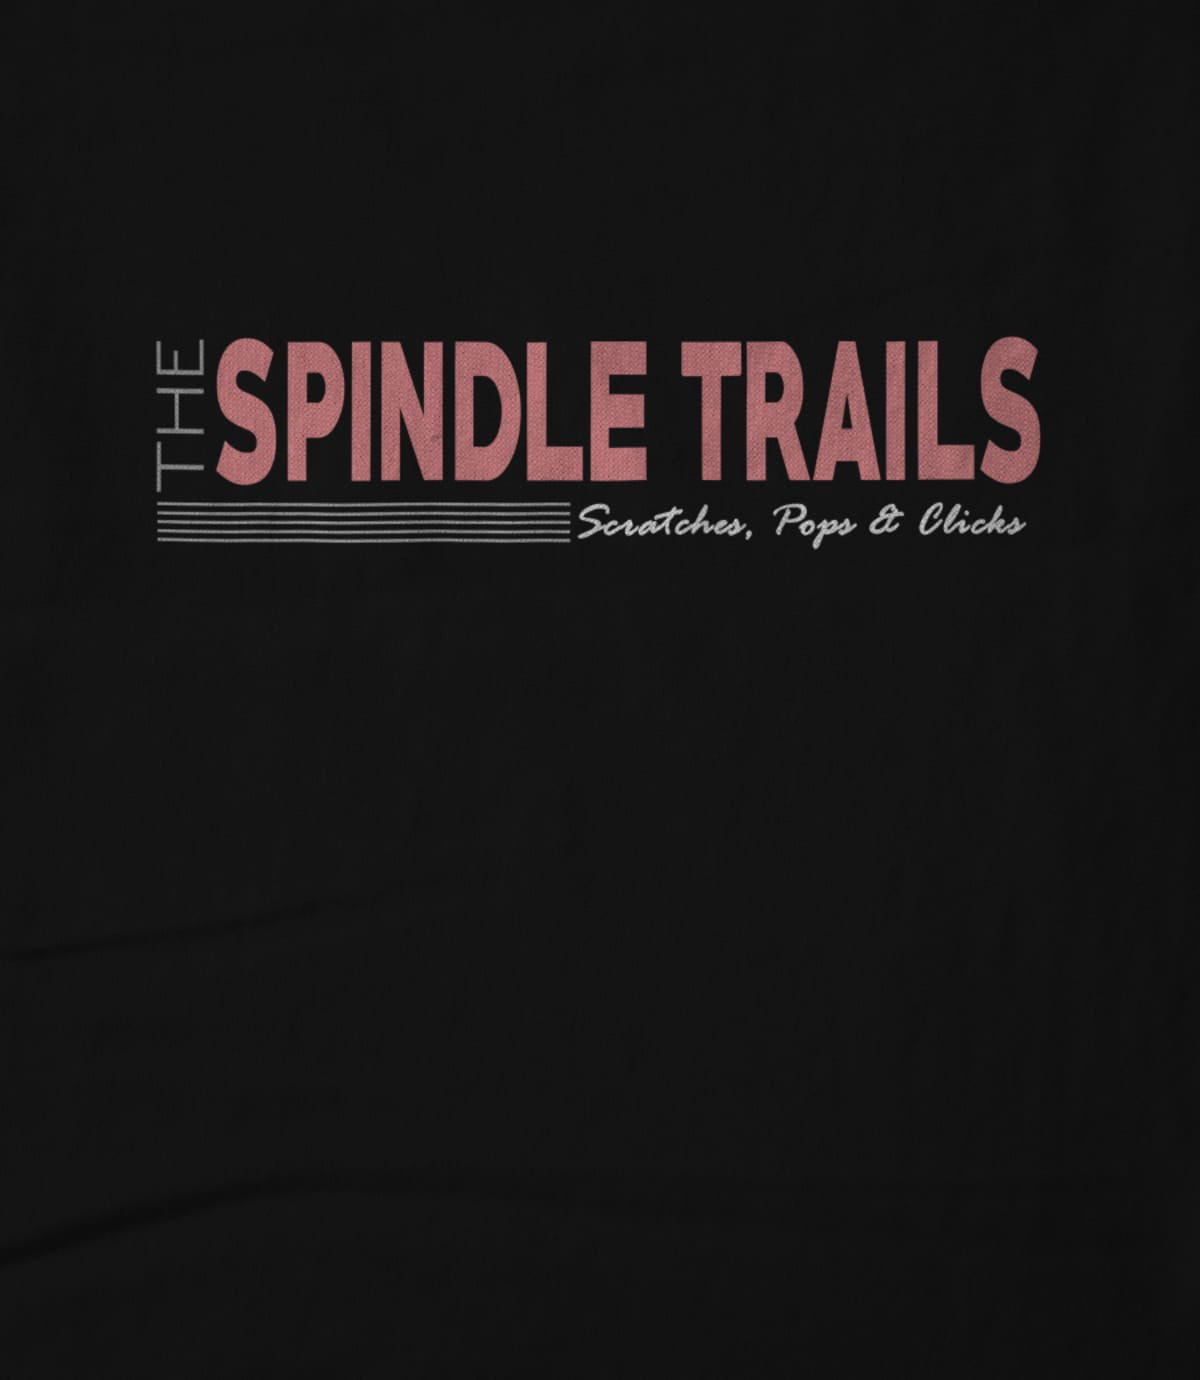 Spindle Trails